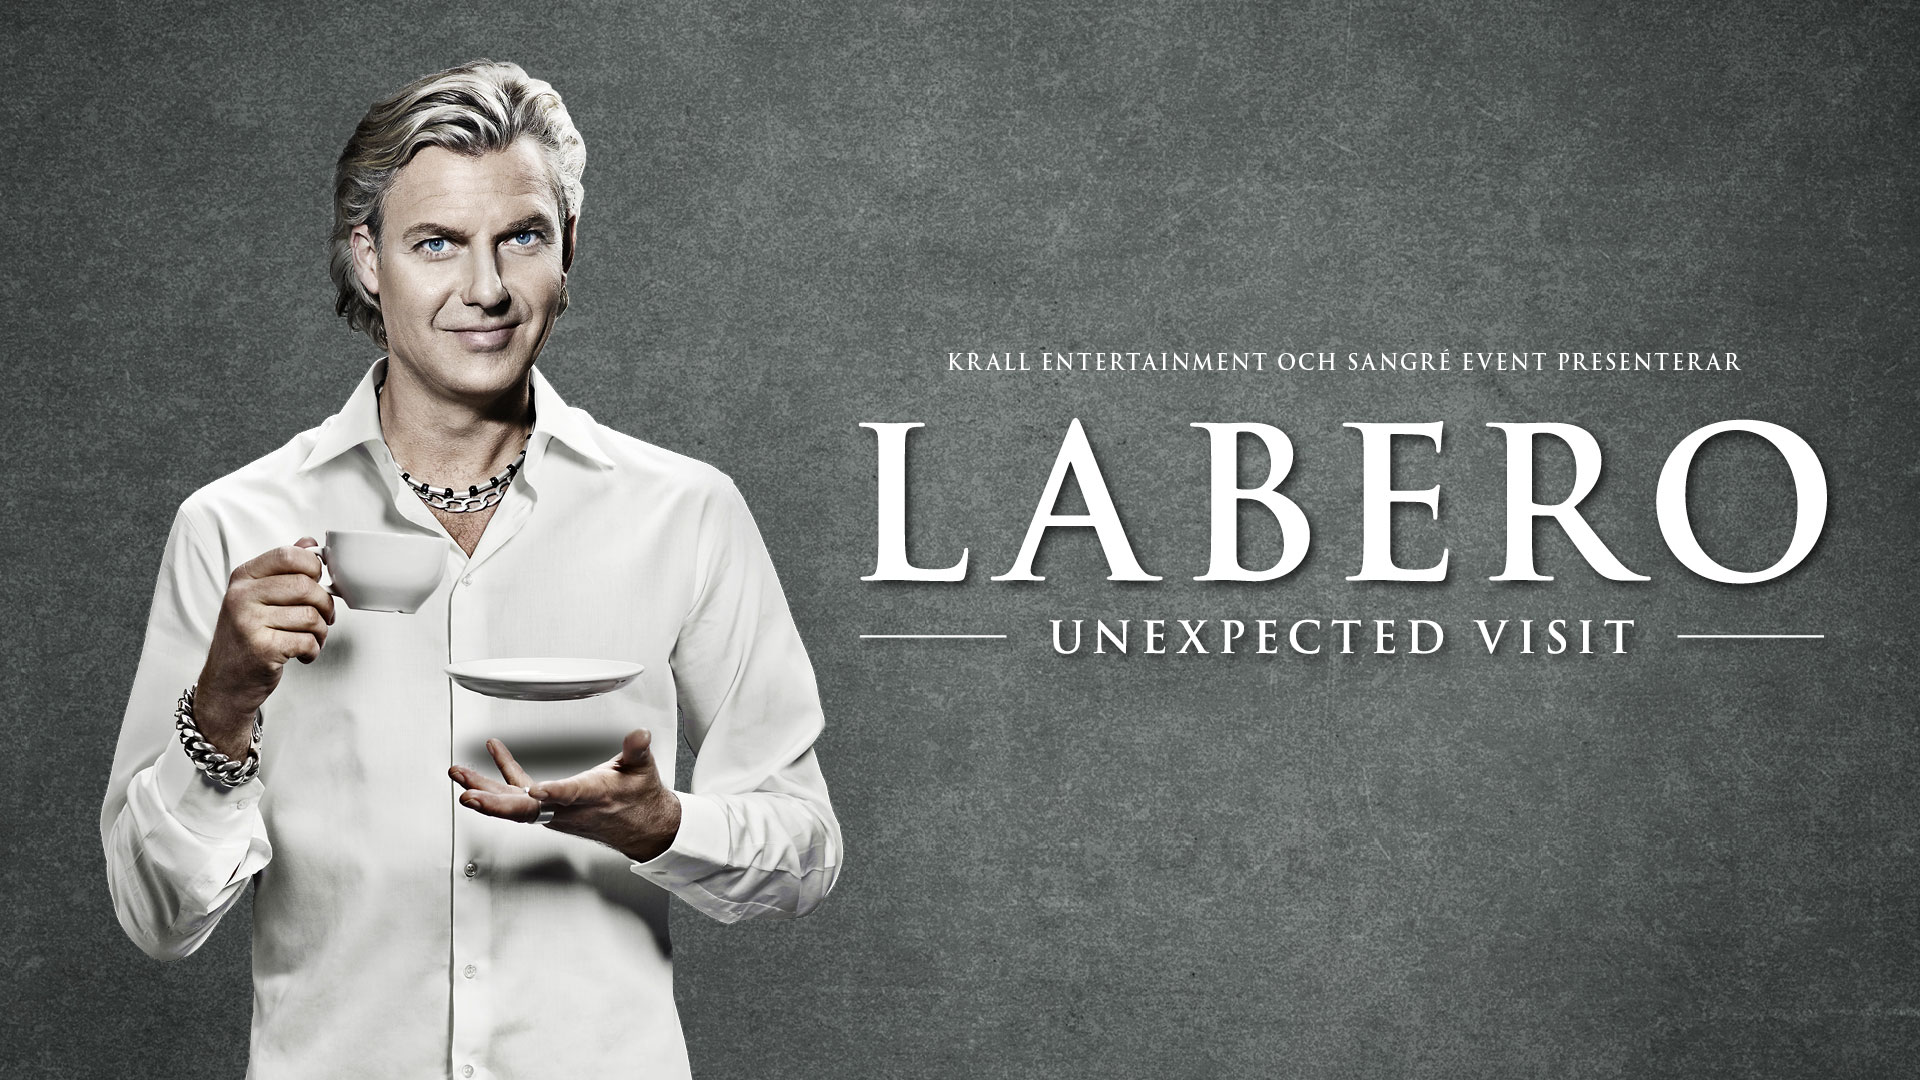 Link to event Labero - Unexpected Visit